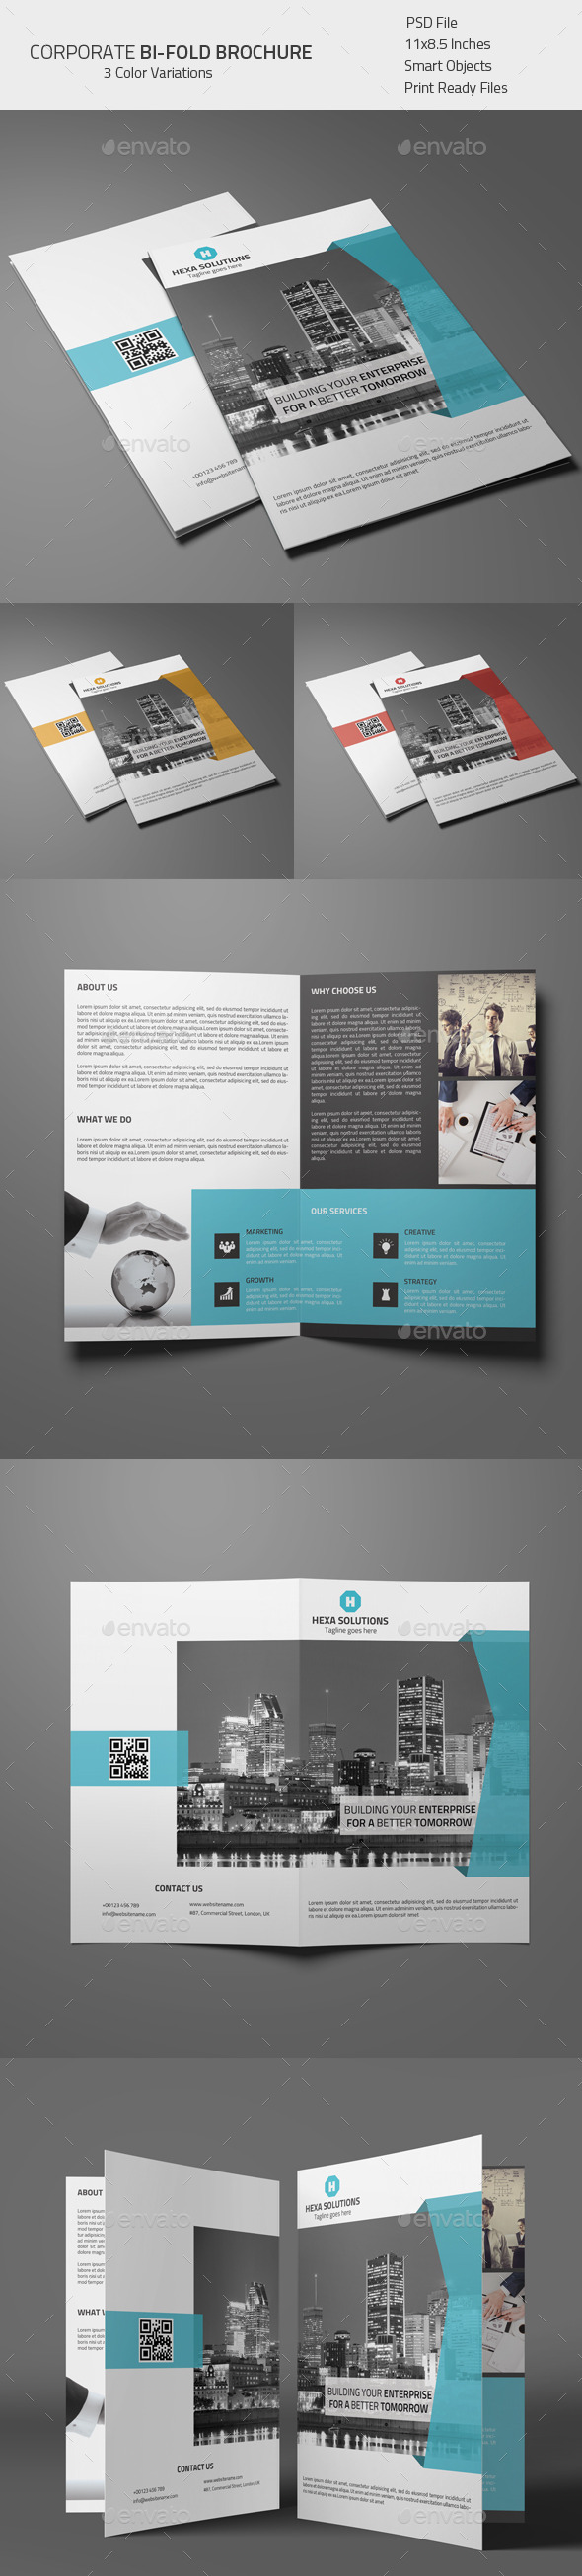 GraphicRiver Corporate Bi-fold Brochure 02 8814715